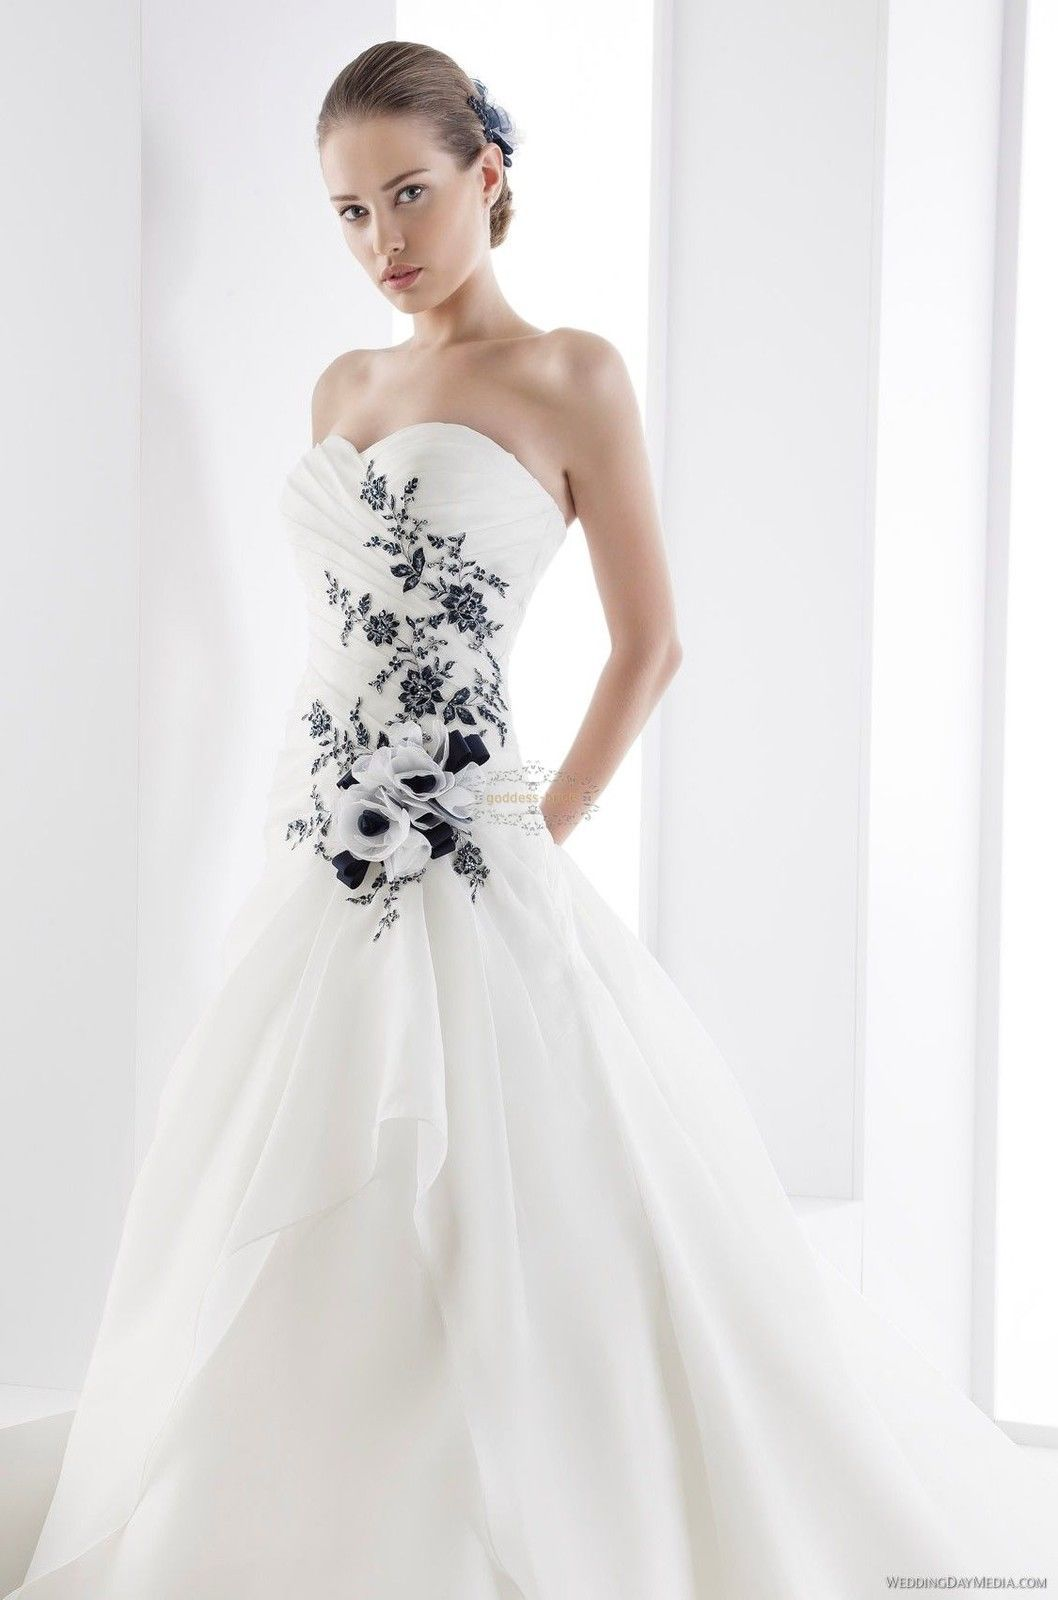 Black and White Wedding Dress | My Dream Wedding | Pinterest | White ...